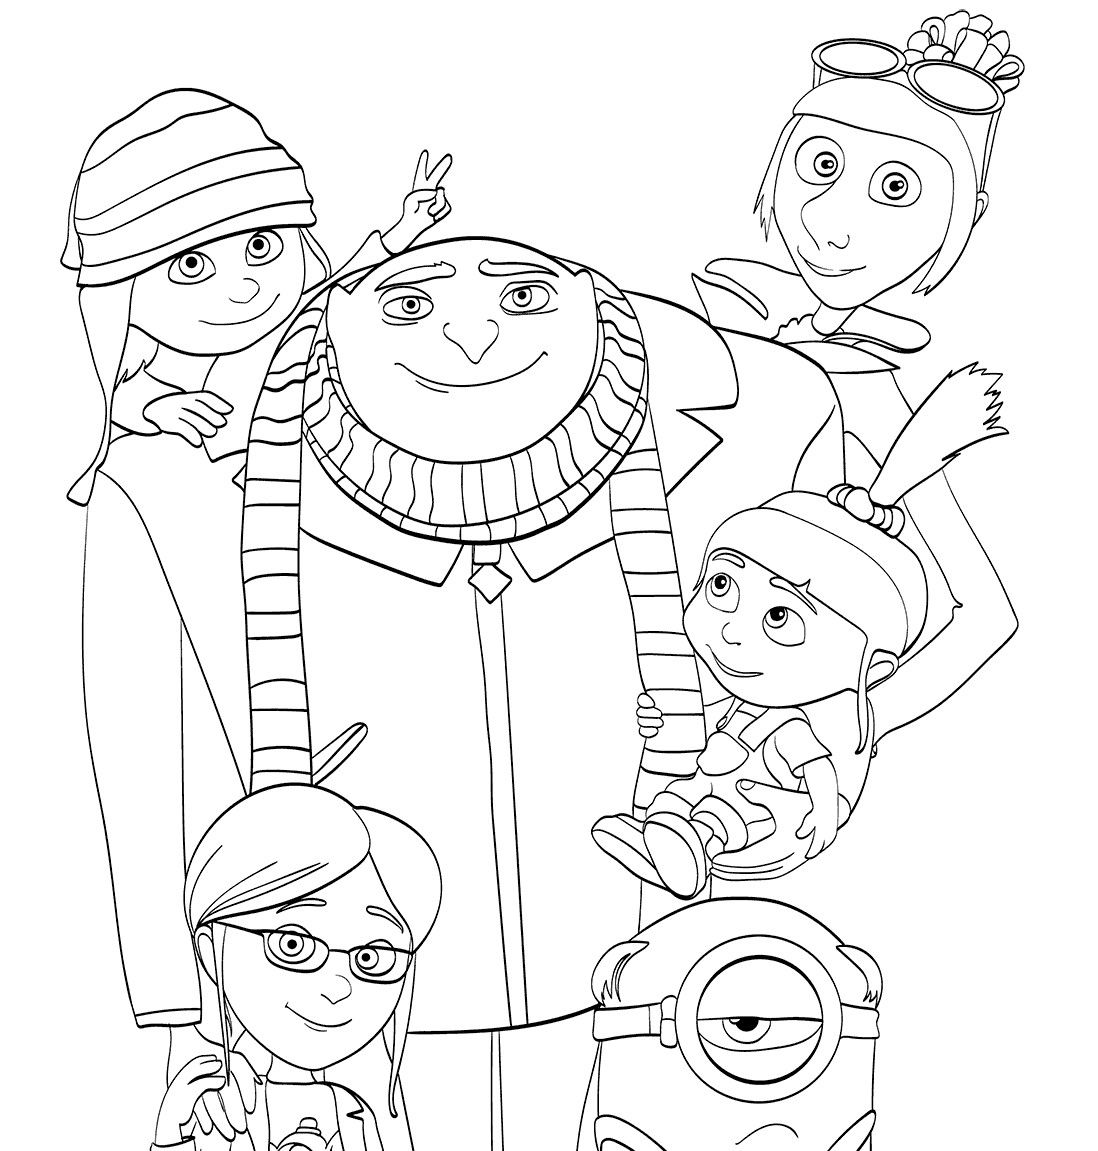 Despicable Me Coloring Pages  Despicable Me 3 coloring pages to and print for free